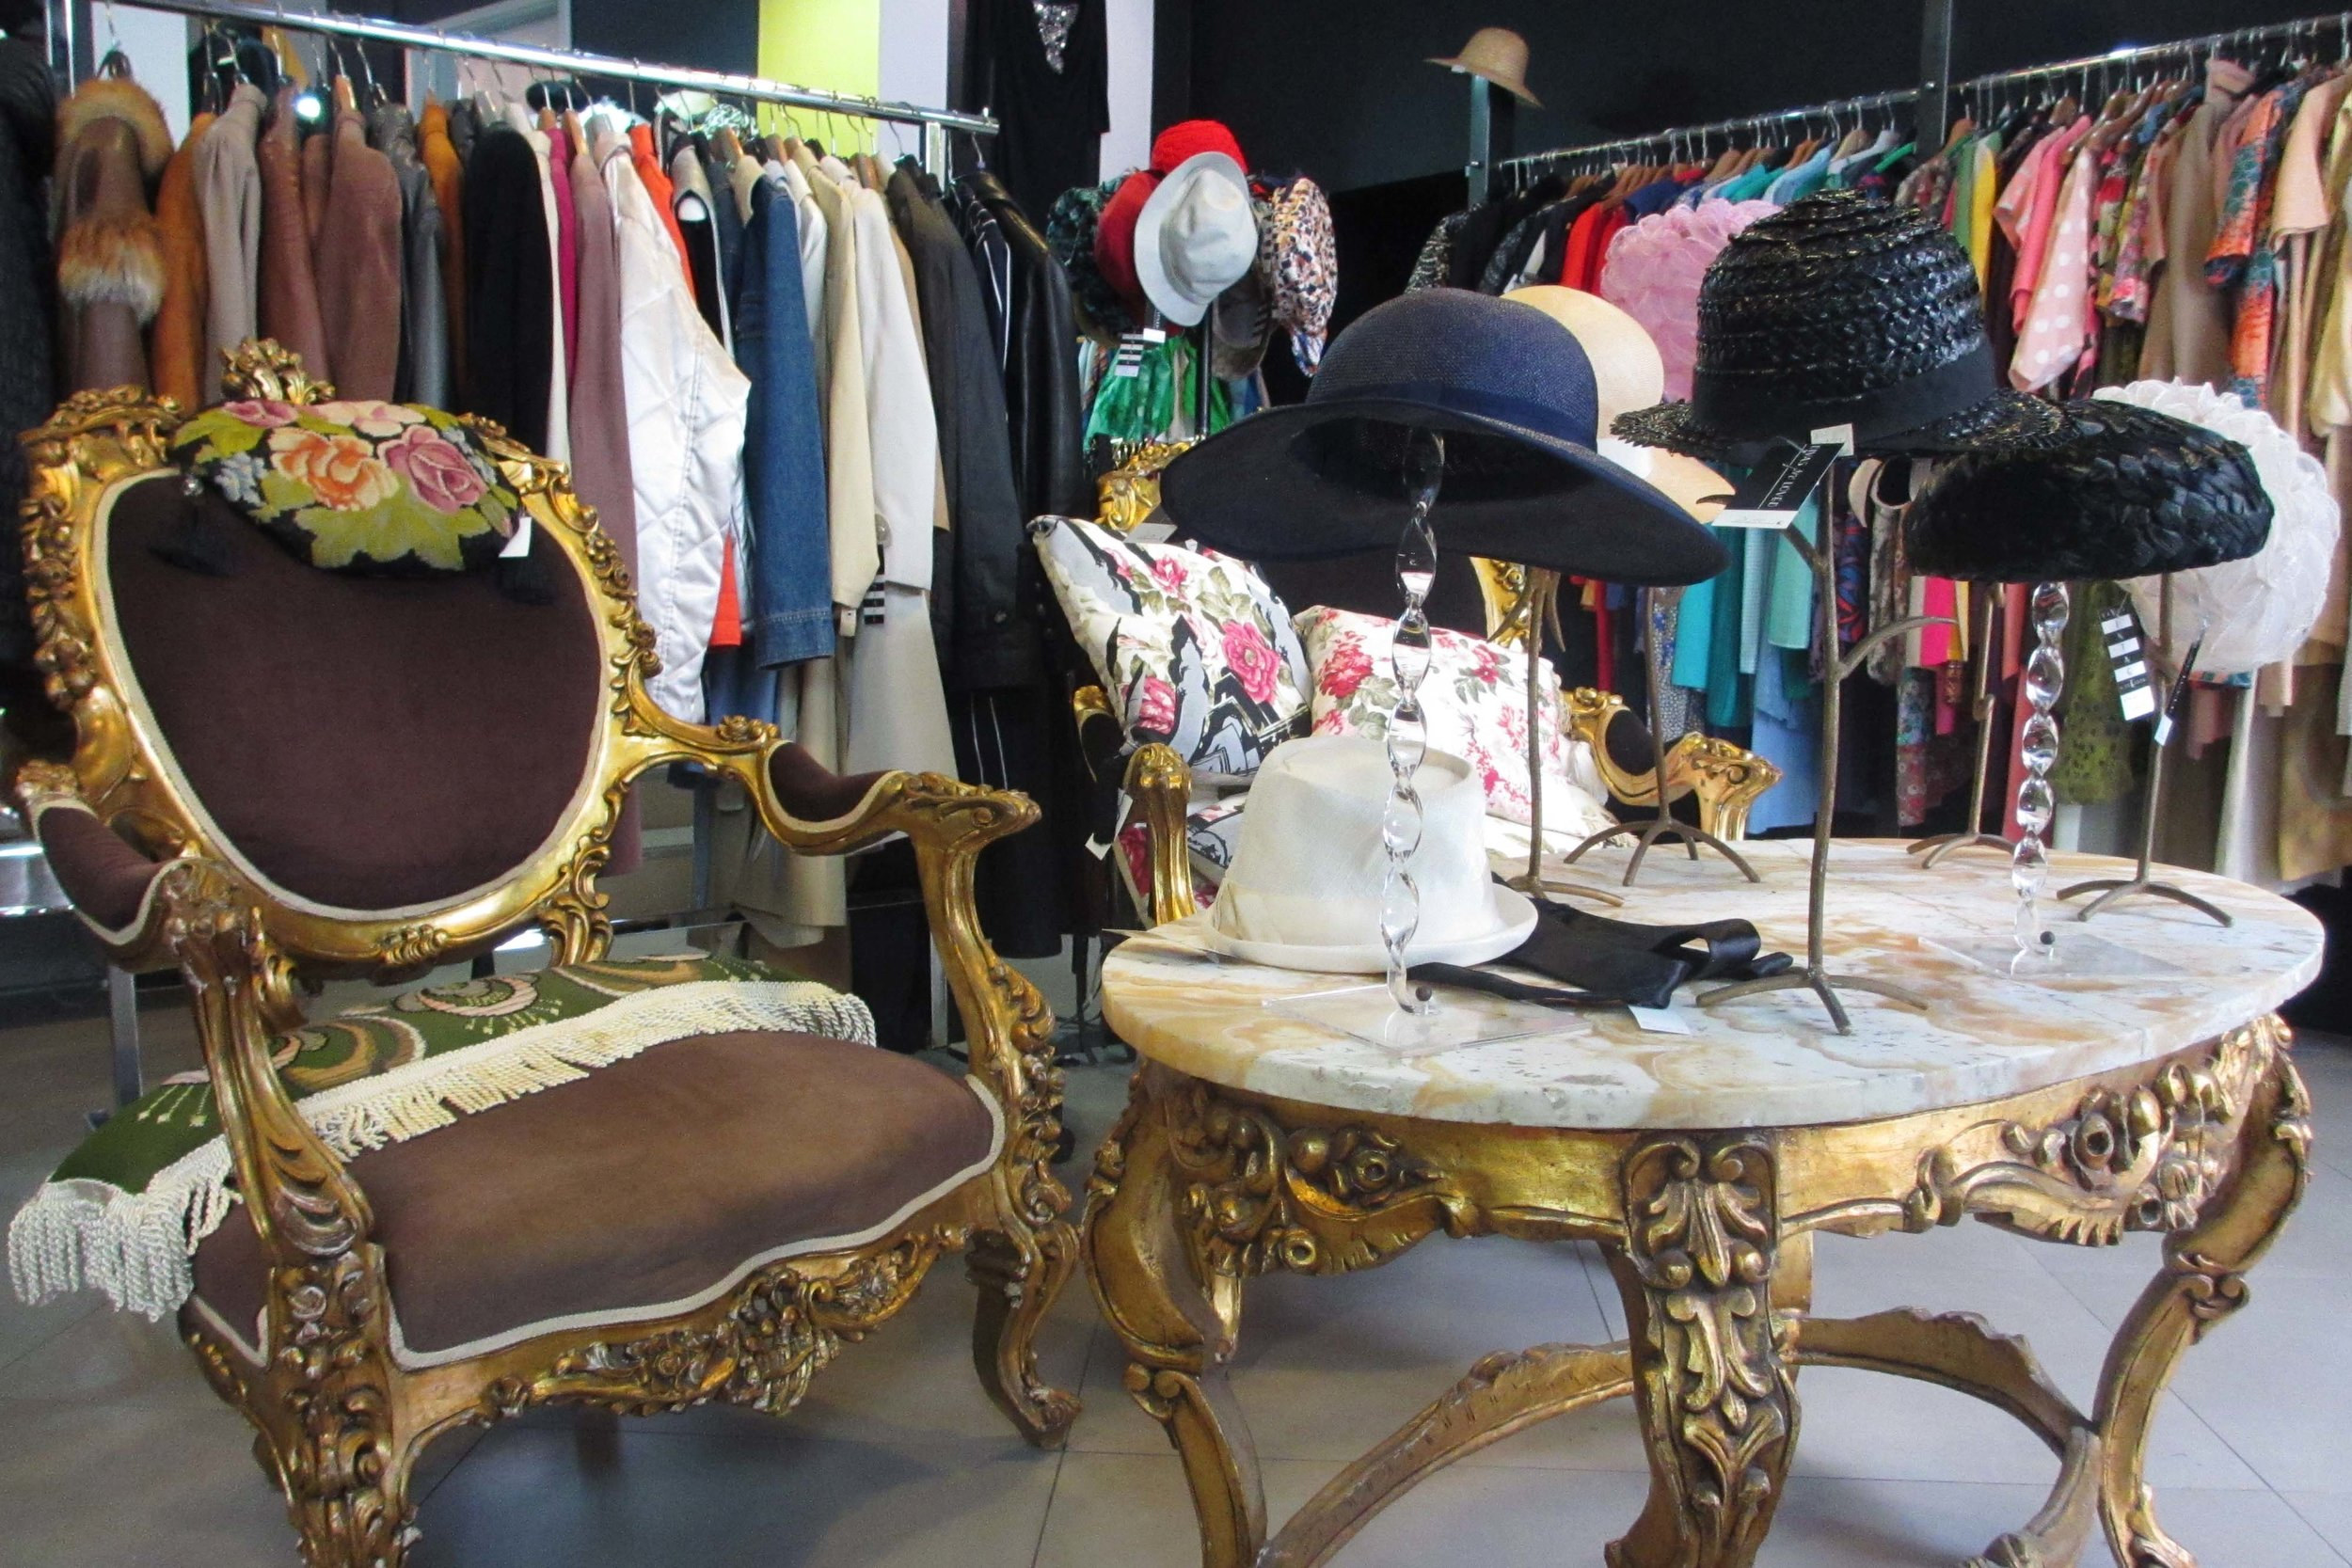 I could have spent a lot more time in Divas Preloved. Image by Sarah Reid